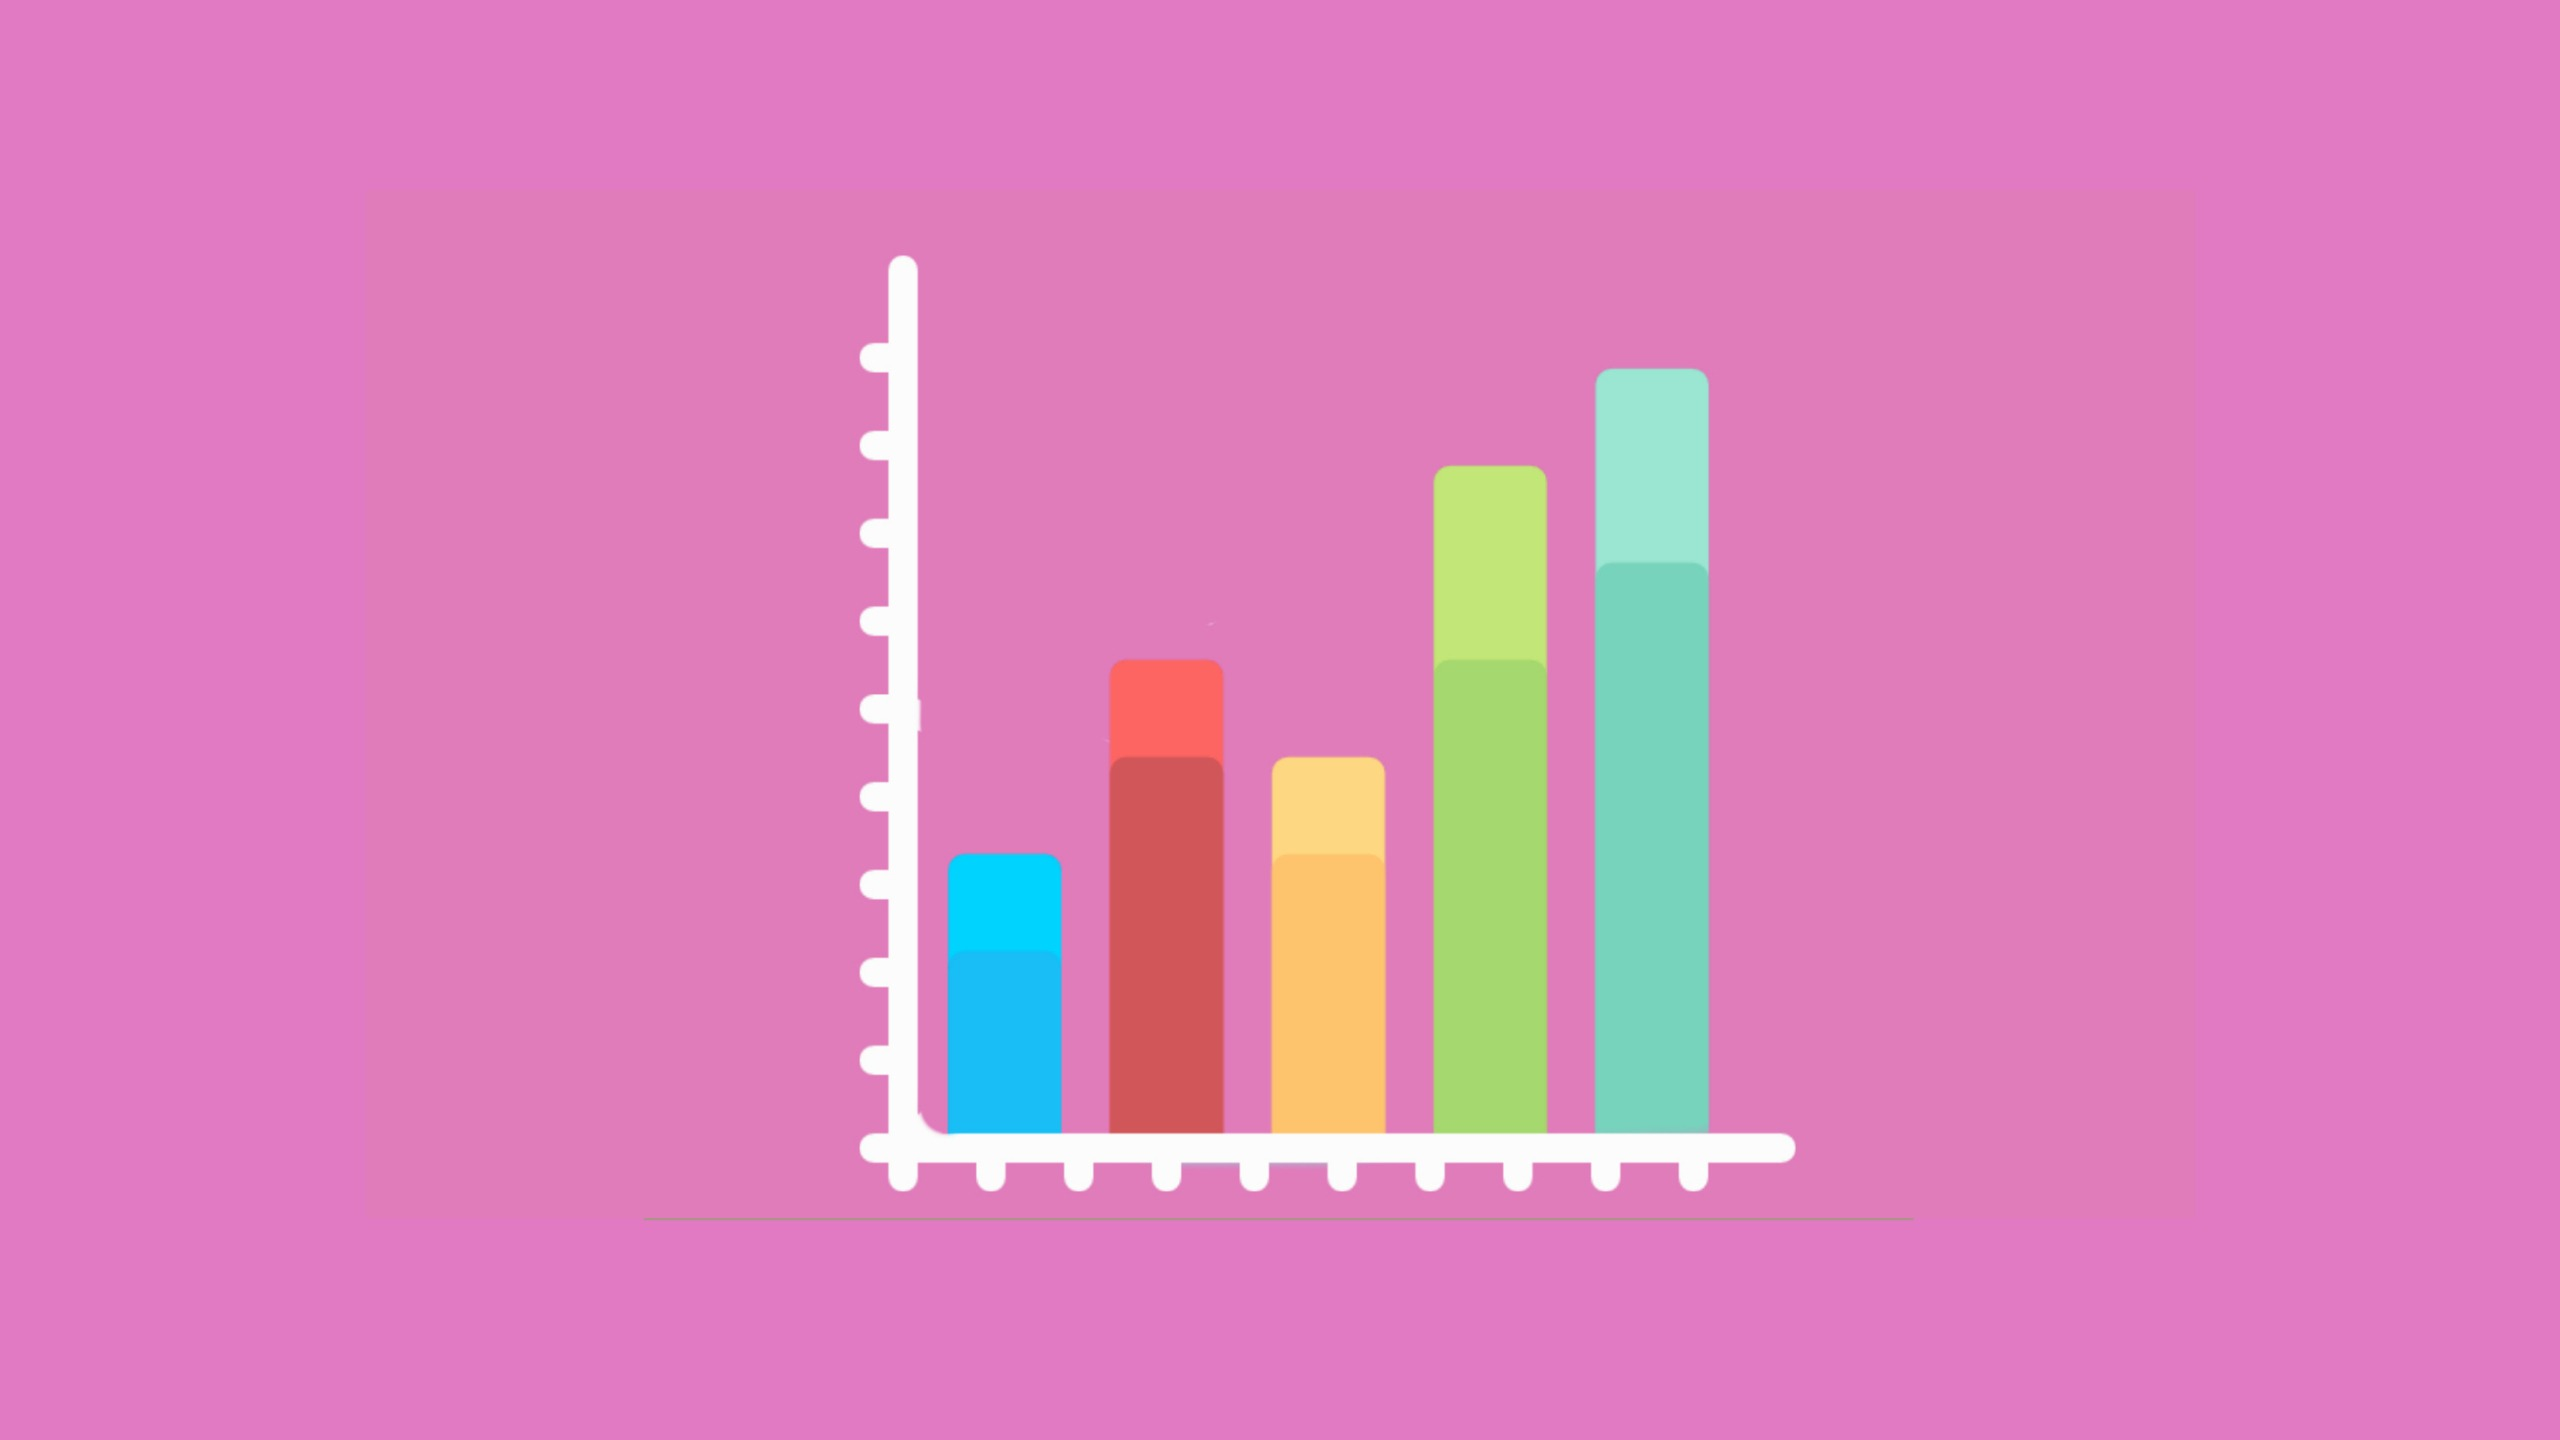 A bar chart sits on a pink background to signify how to find IELTS Change Chart Overview